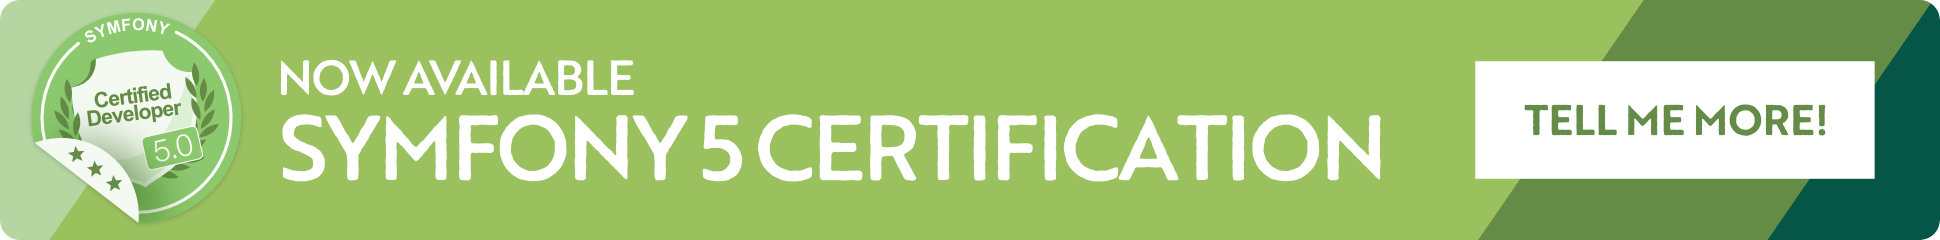 The Symfony 5 Certification is now available.